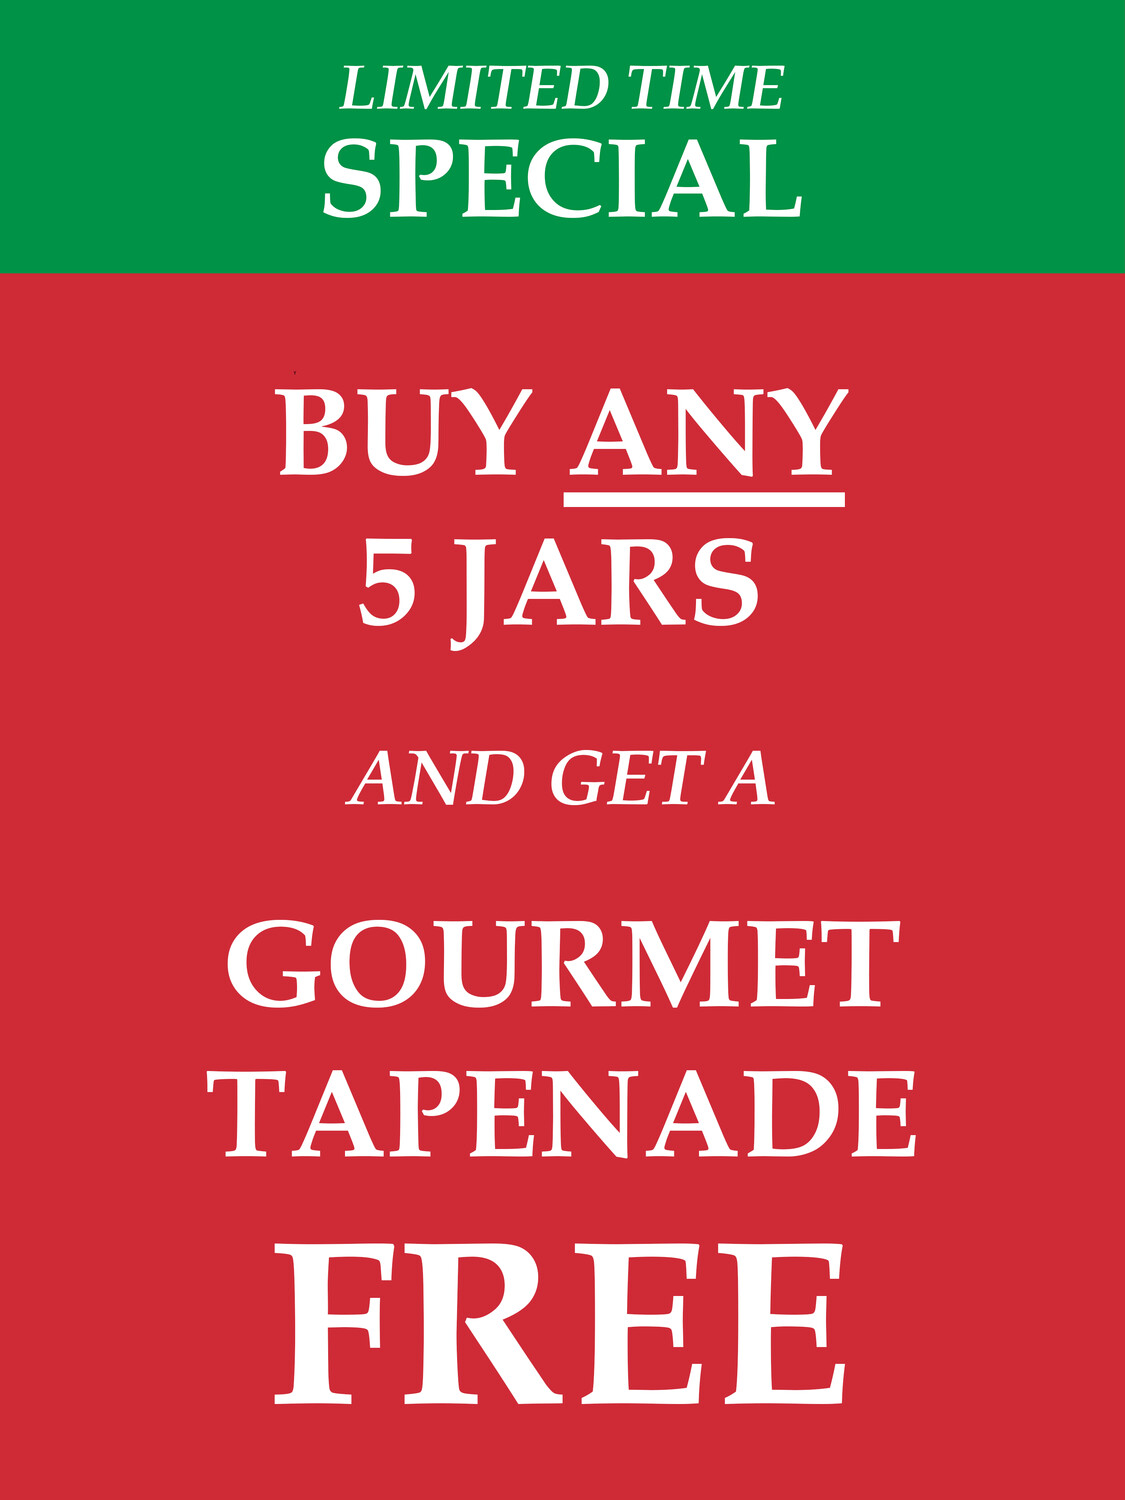 LIMITED TIME SPECIAL - Buy Any 5 Jars Get 1 Tapenade Free